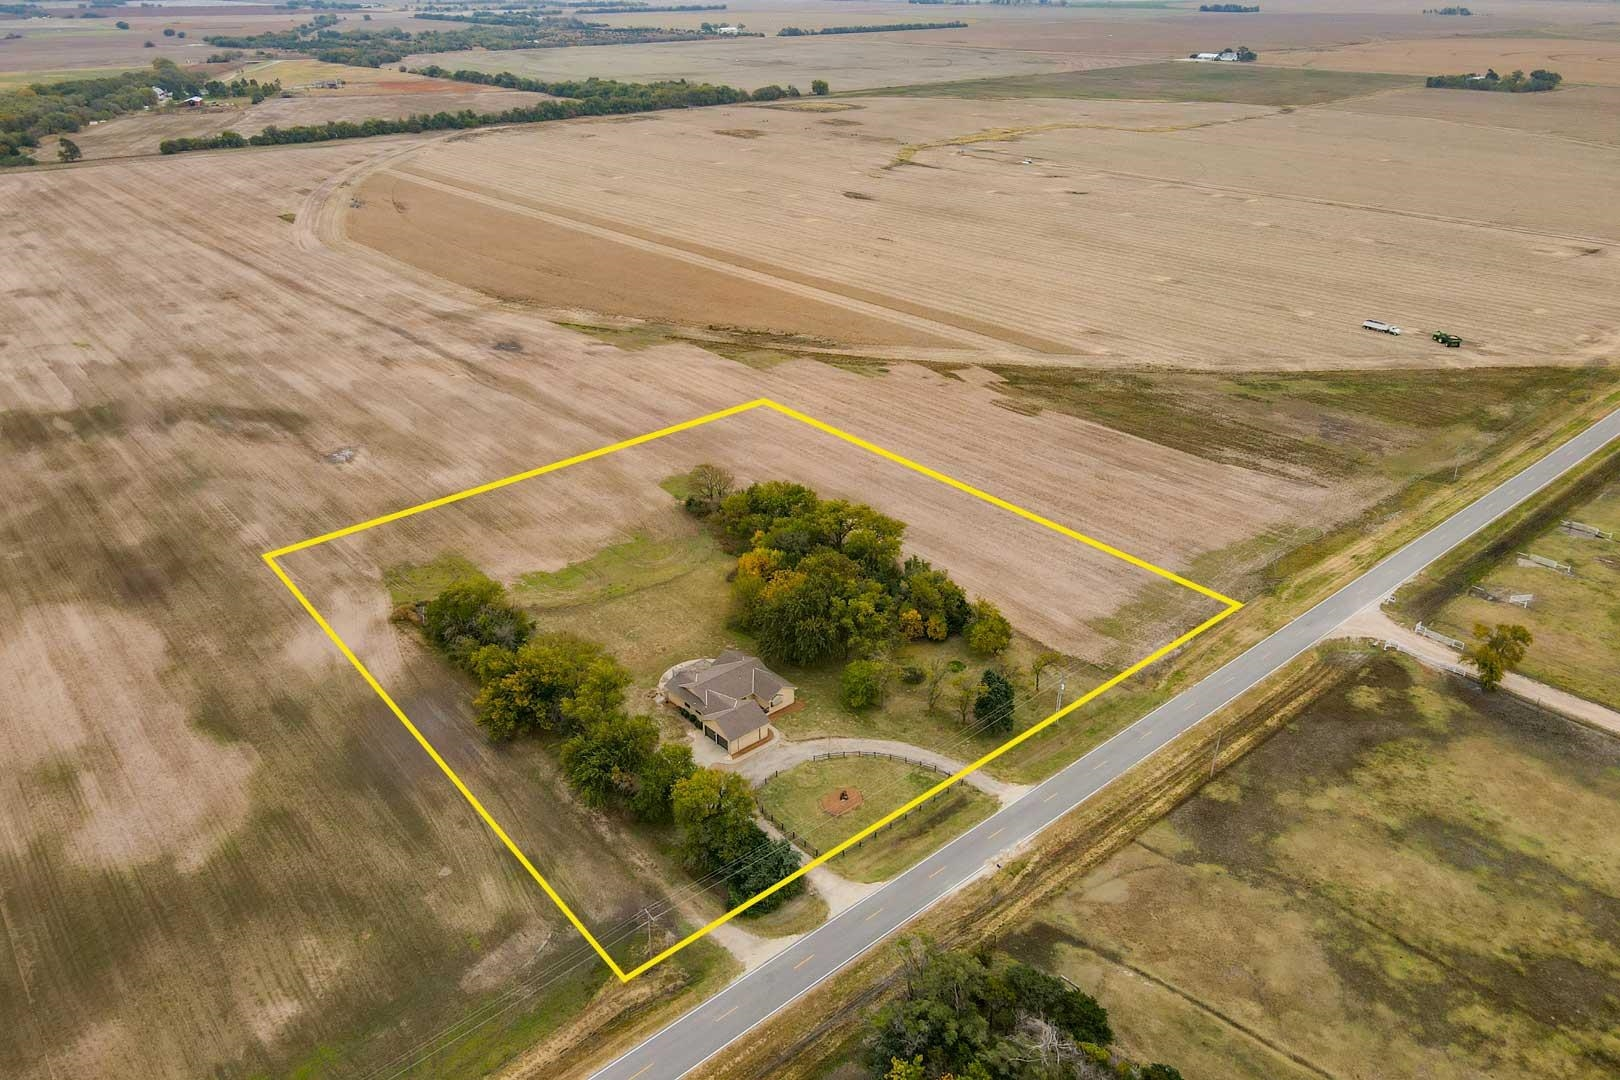 Property offered at ONLINE ONLY auction. BIDDING OPENS: Tuesday, November 9th, 2021at 2:00 PM (cst)